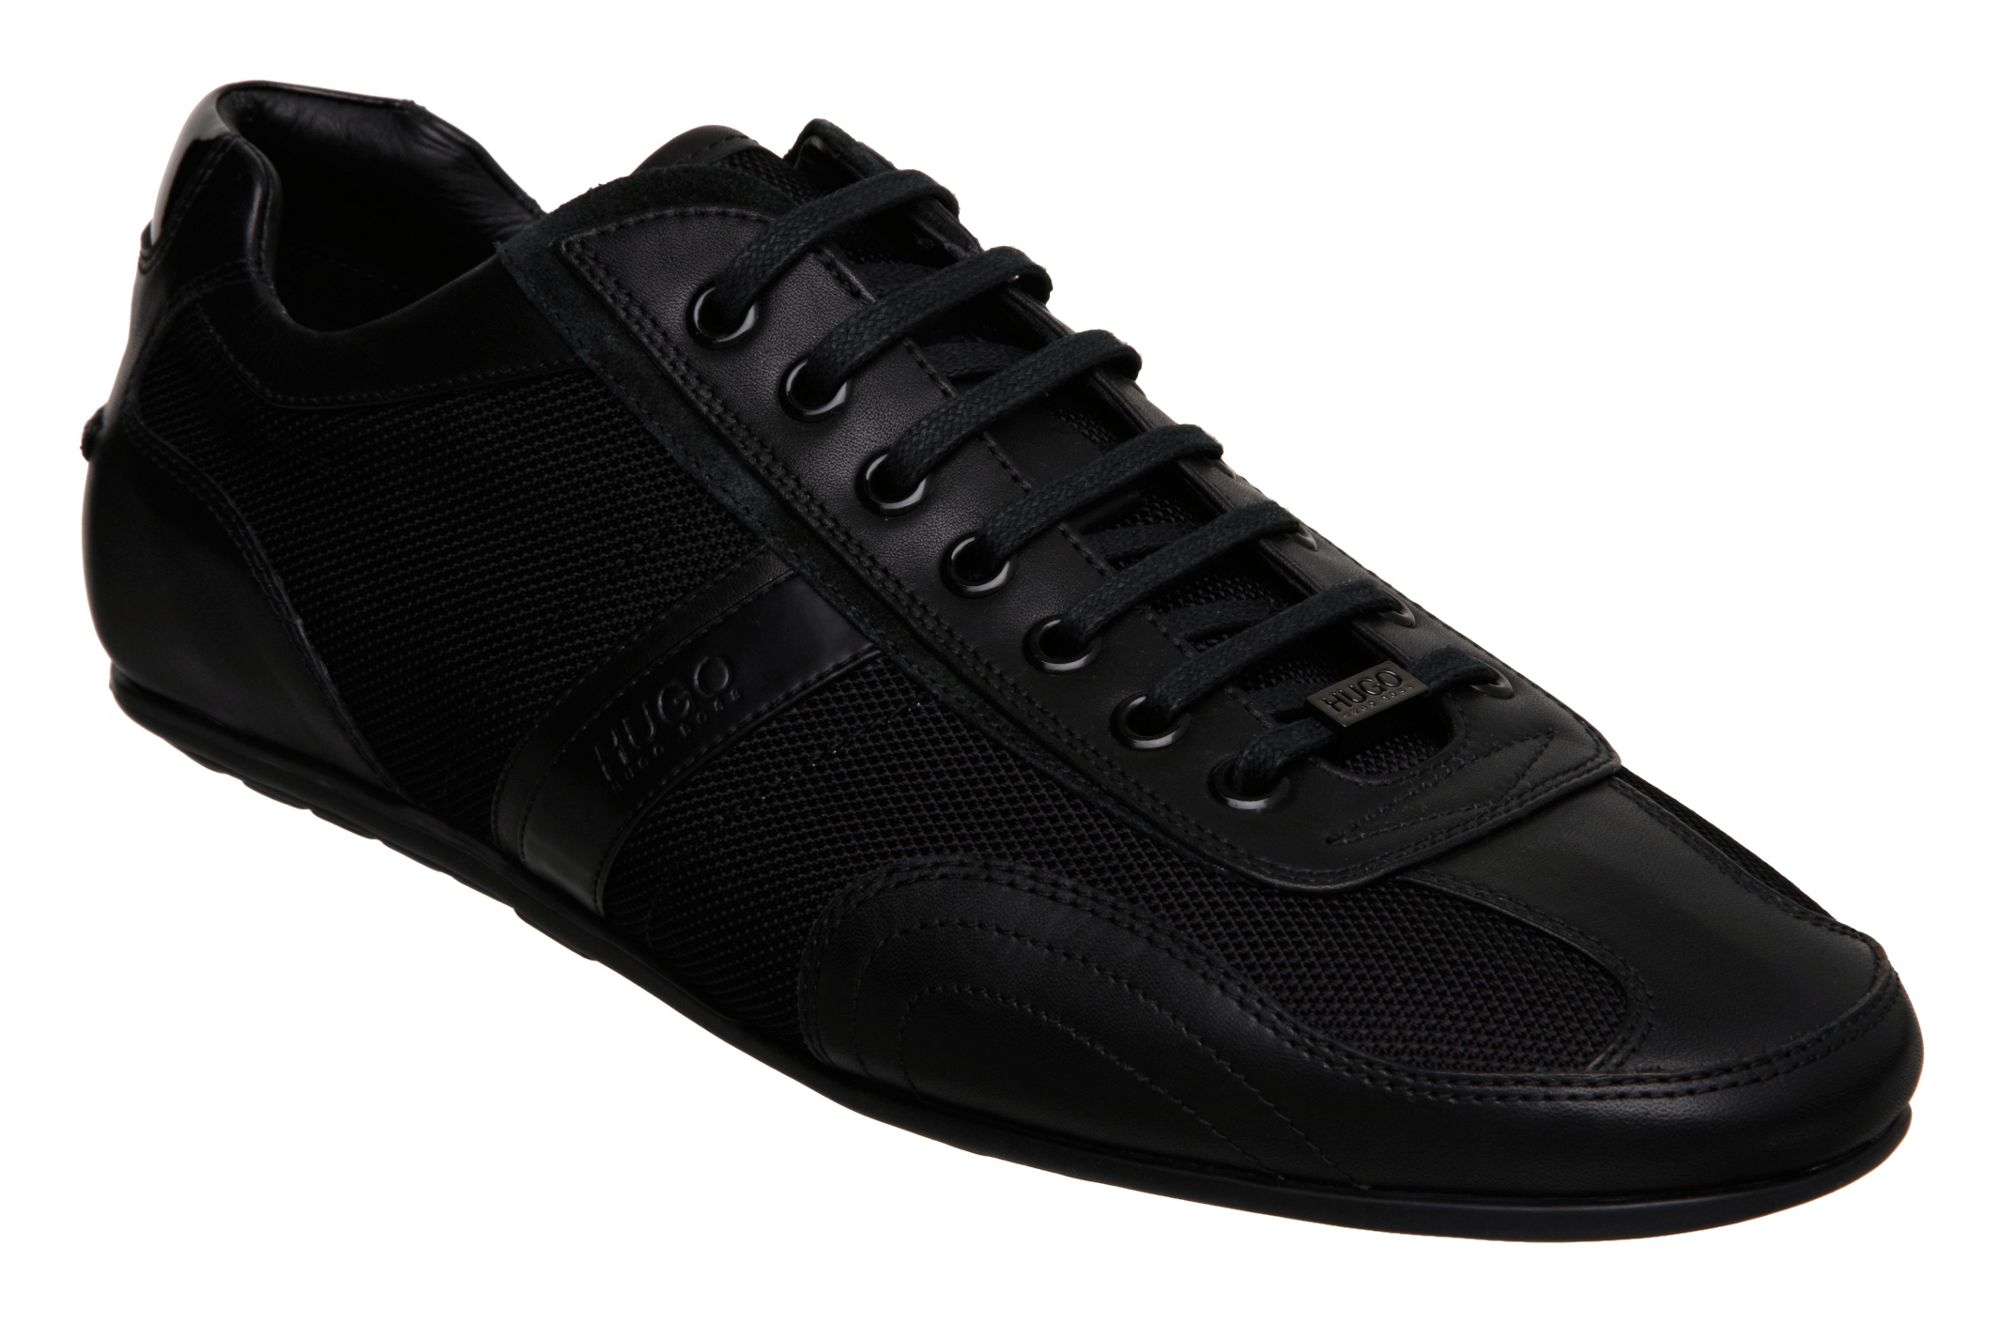 Hugo Boss Shoes Size